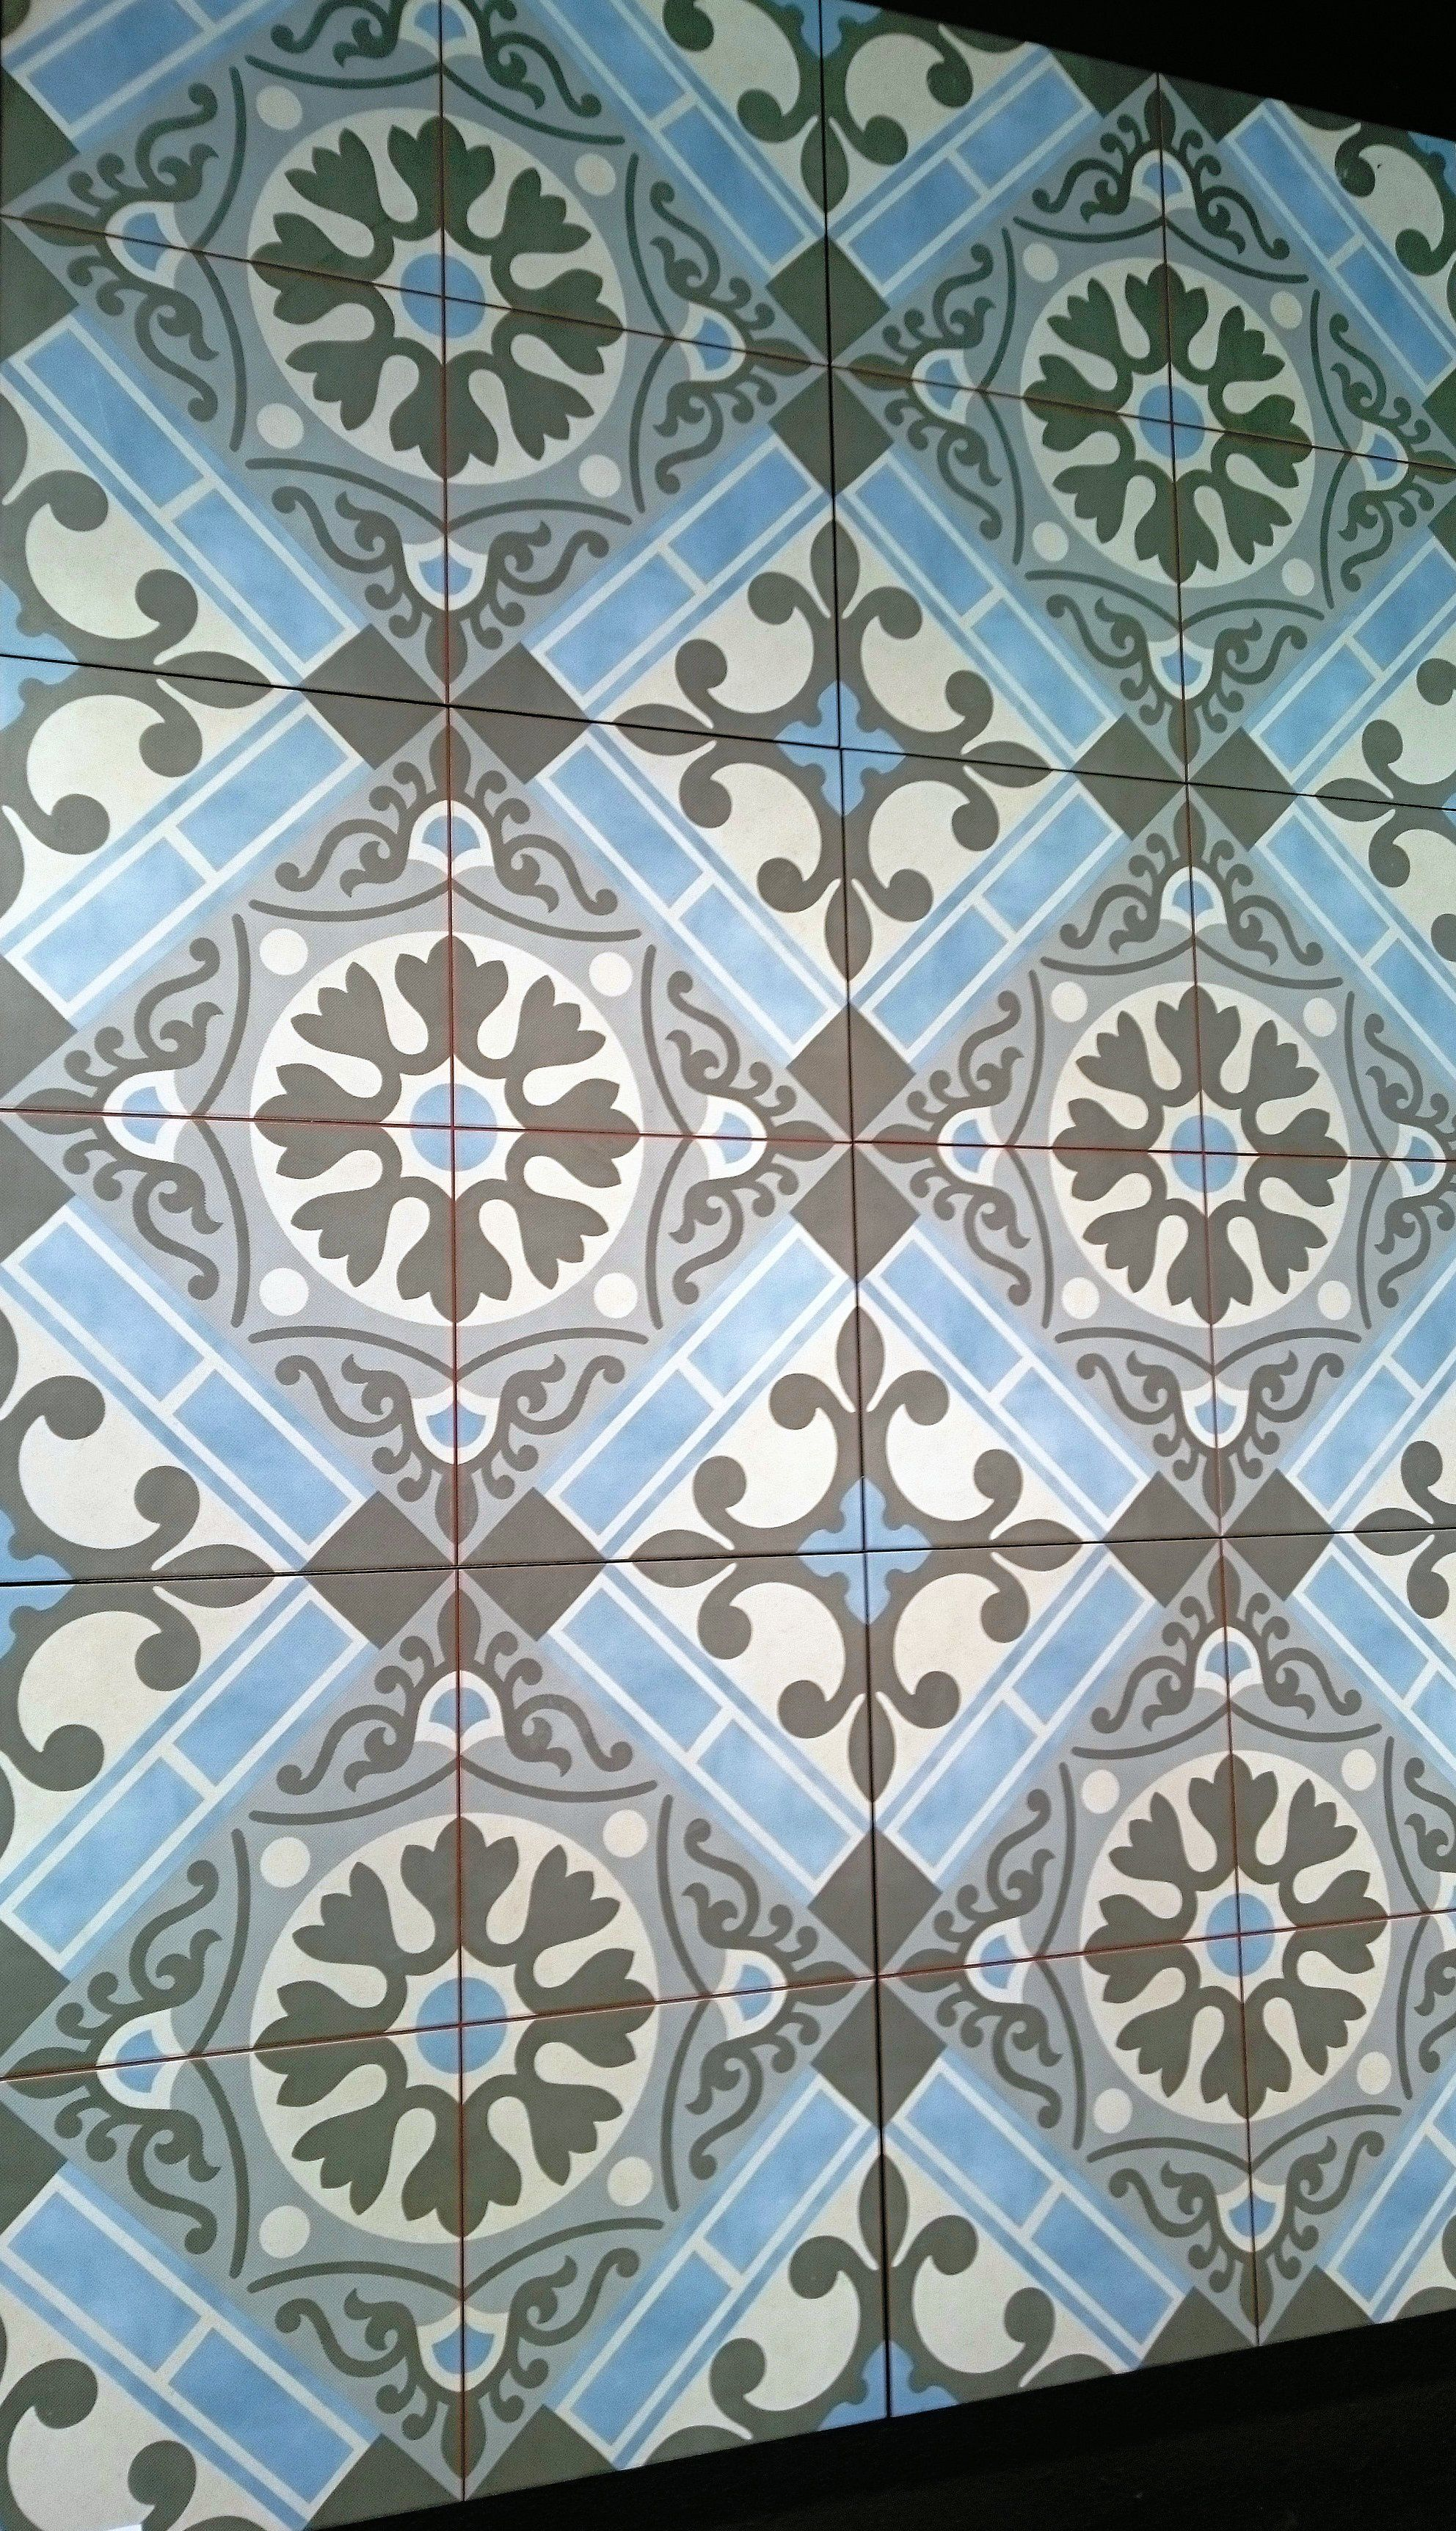 Terrific ceramic tiles spain ideas simple design home robaxin25 replica encaustic tiles from spain these hard wearing ceramic tiles dailygadgetfo Choice Image